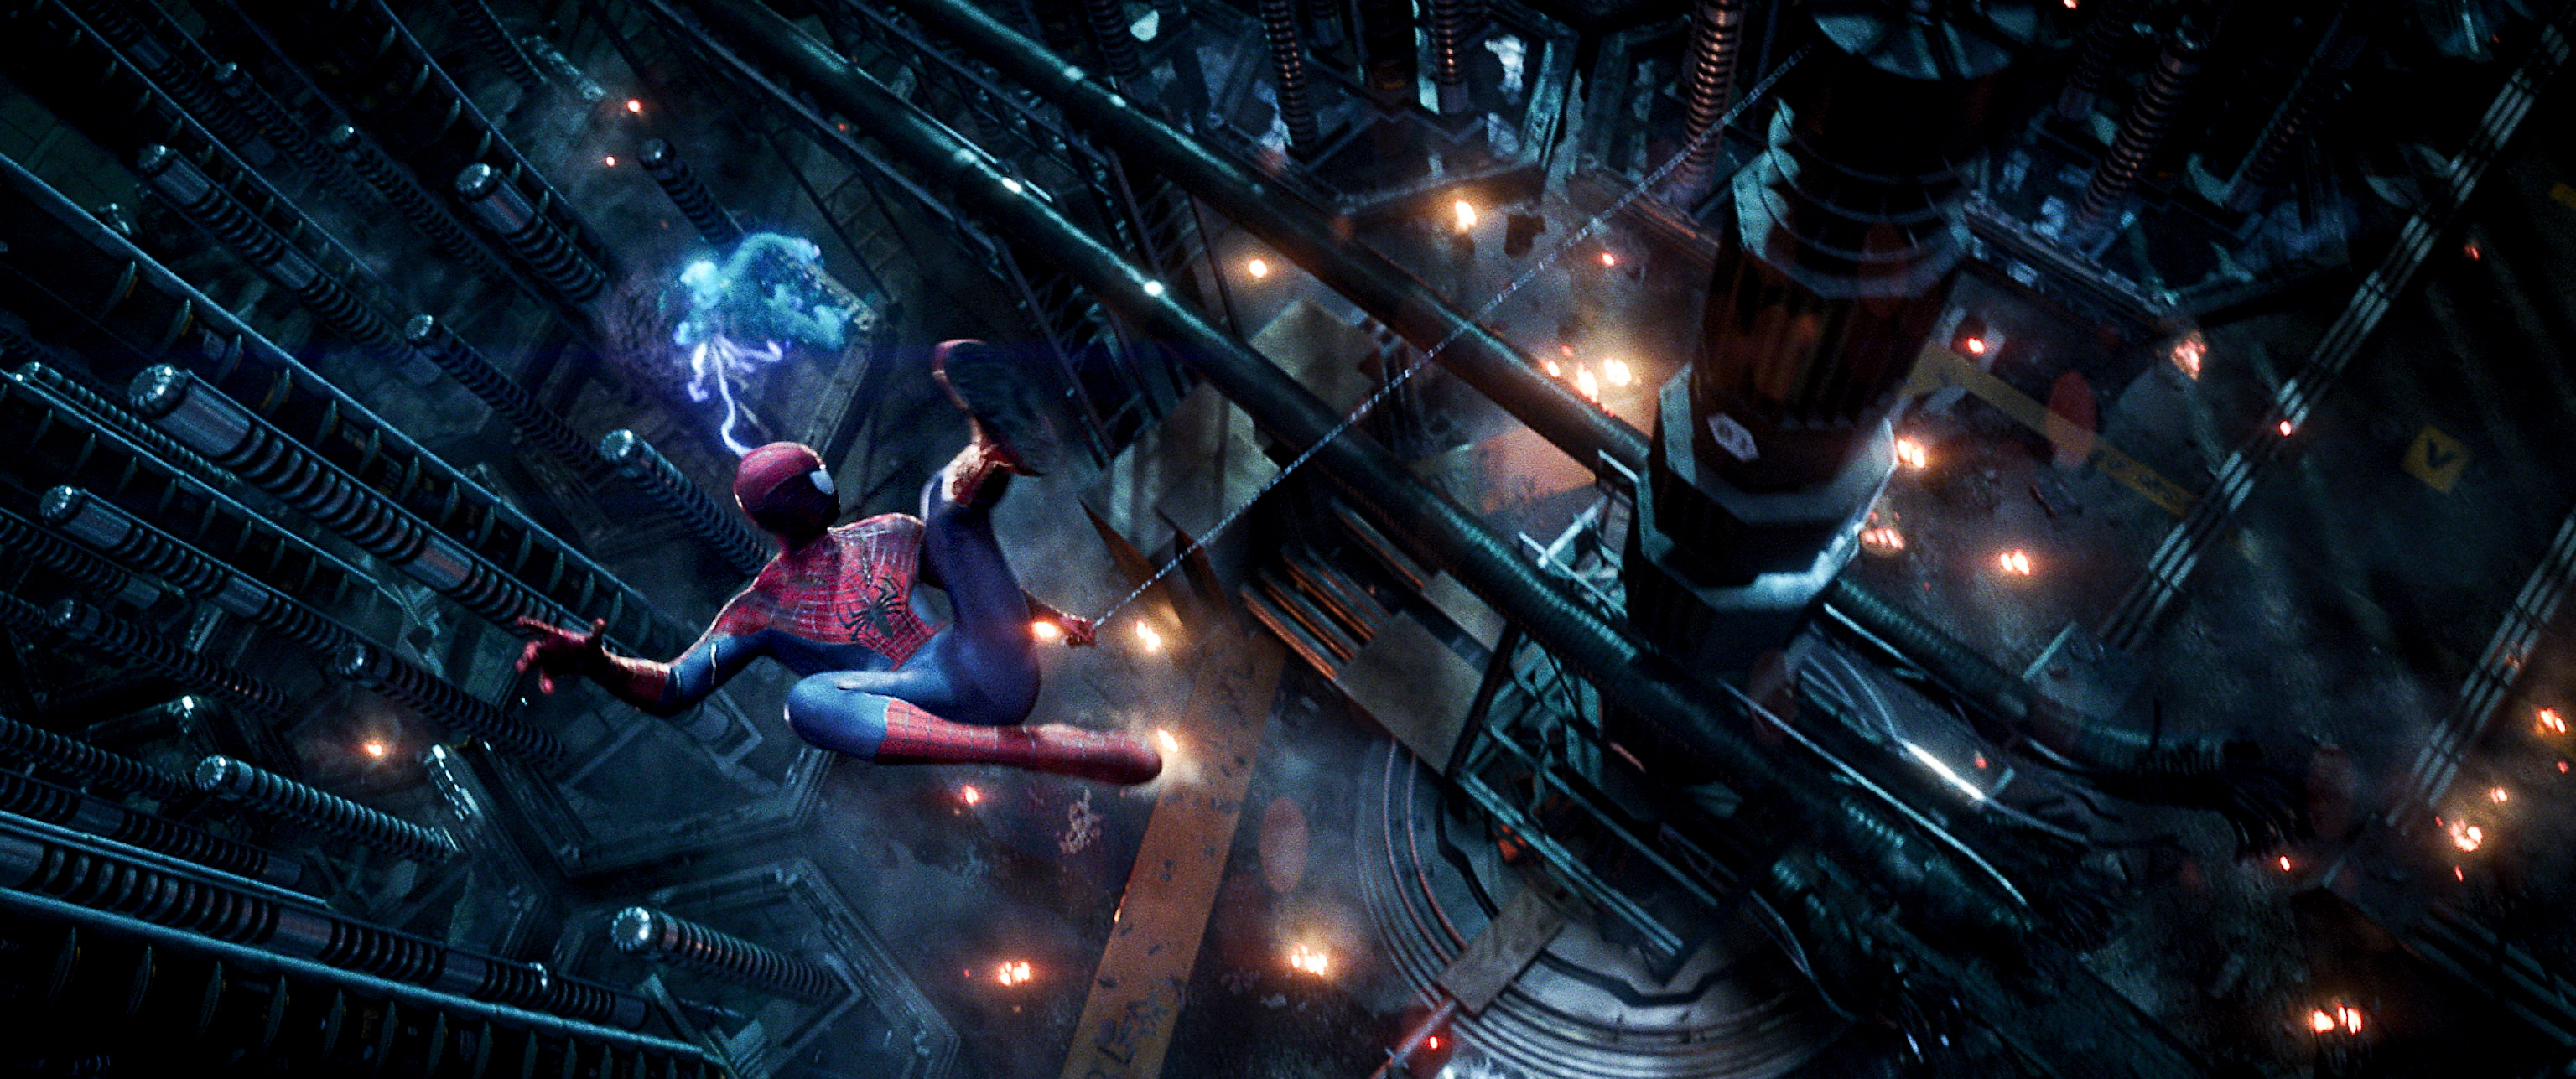 Ultimate Spider Man Game Electro File:the-amazing-spider-man-2-